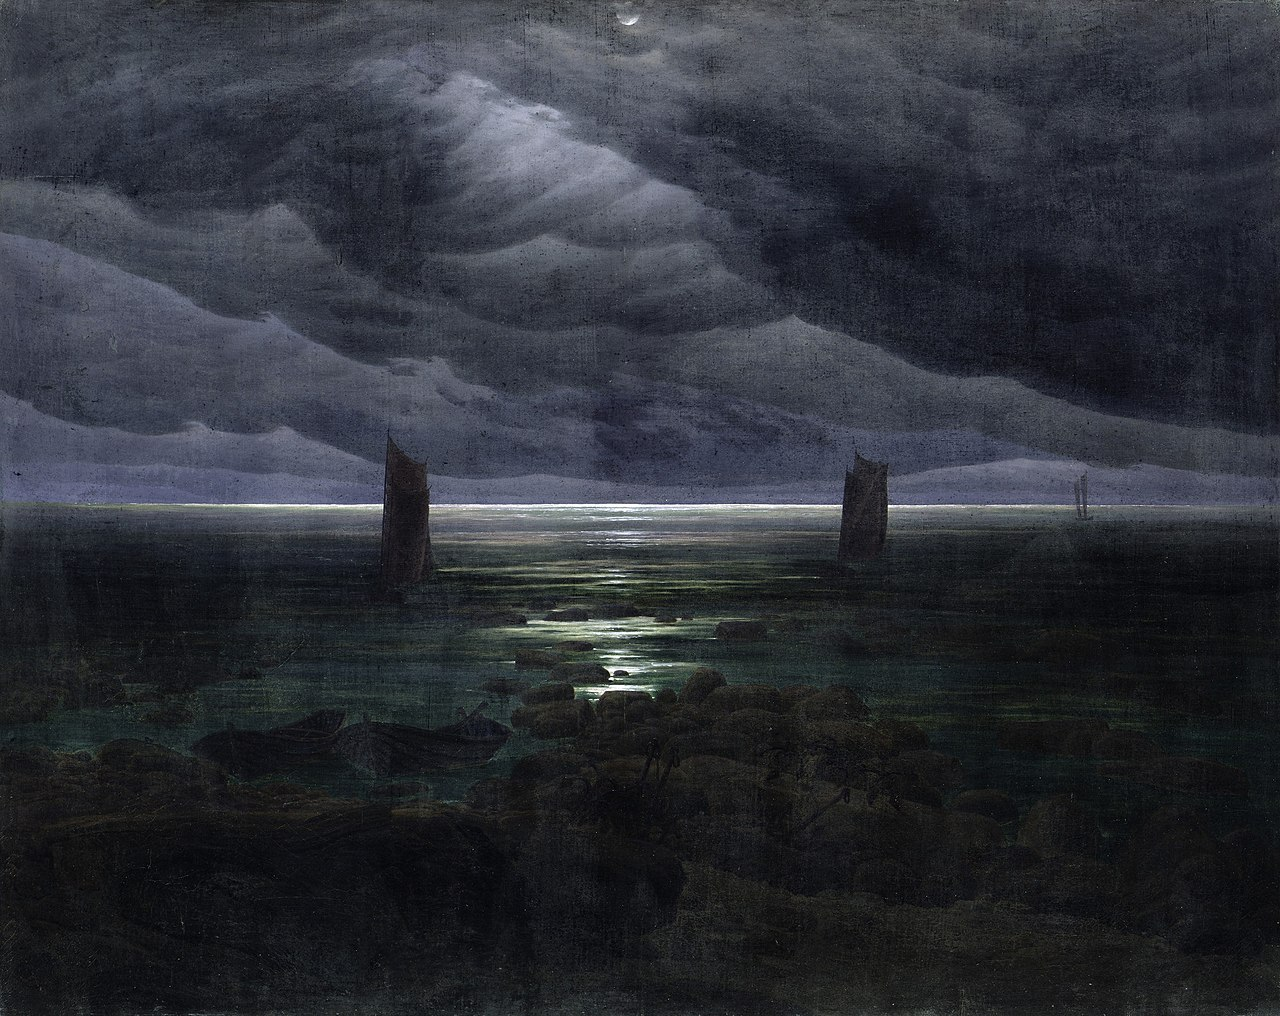 Caspar David Friedrich. Le rivage au clair de lune. (1835-36)